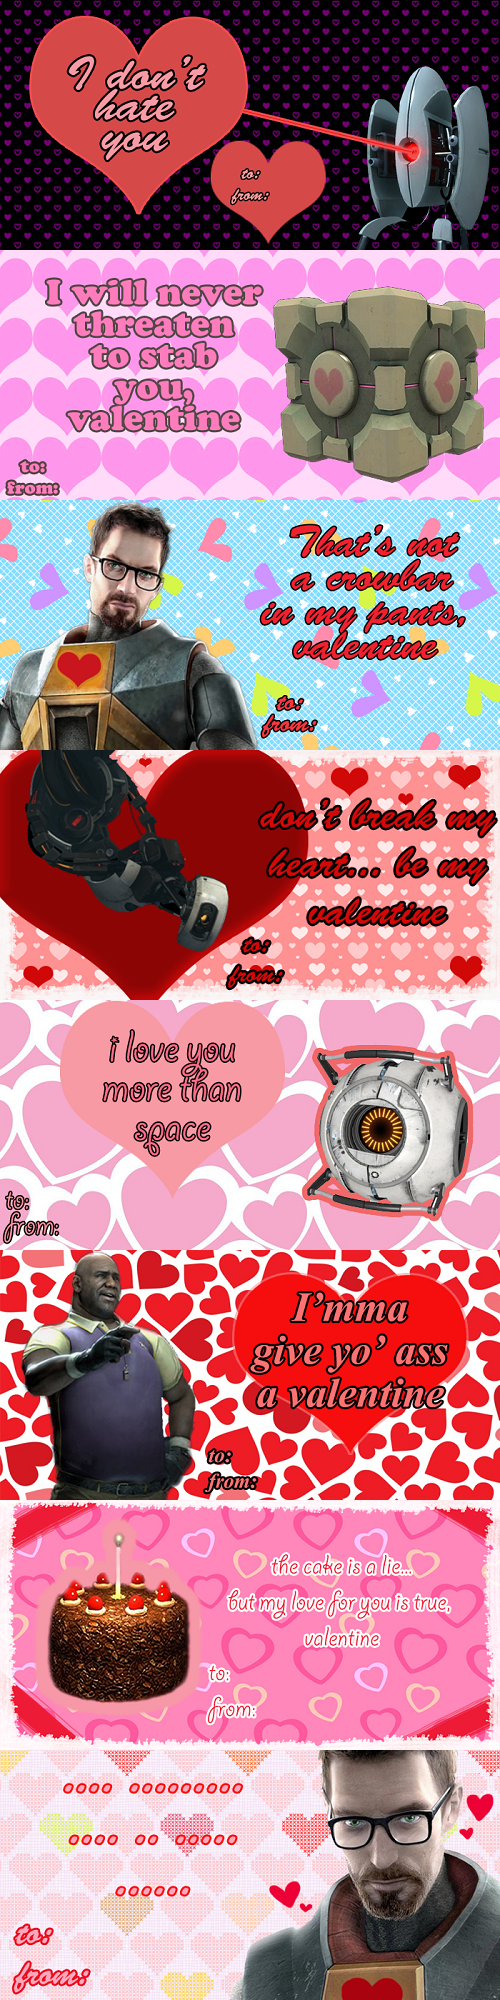 valve,valentine's day cards,Valentines day